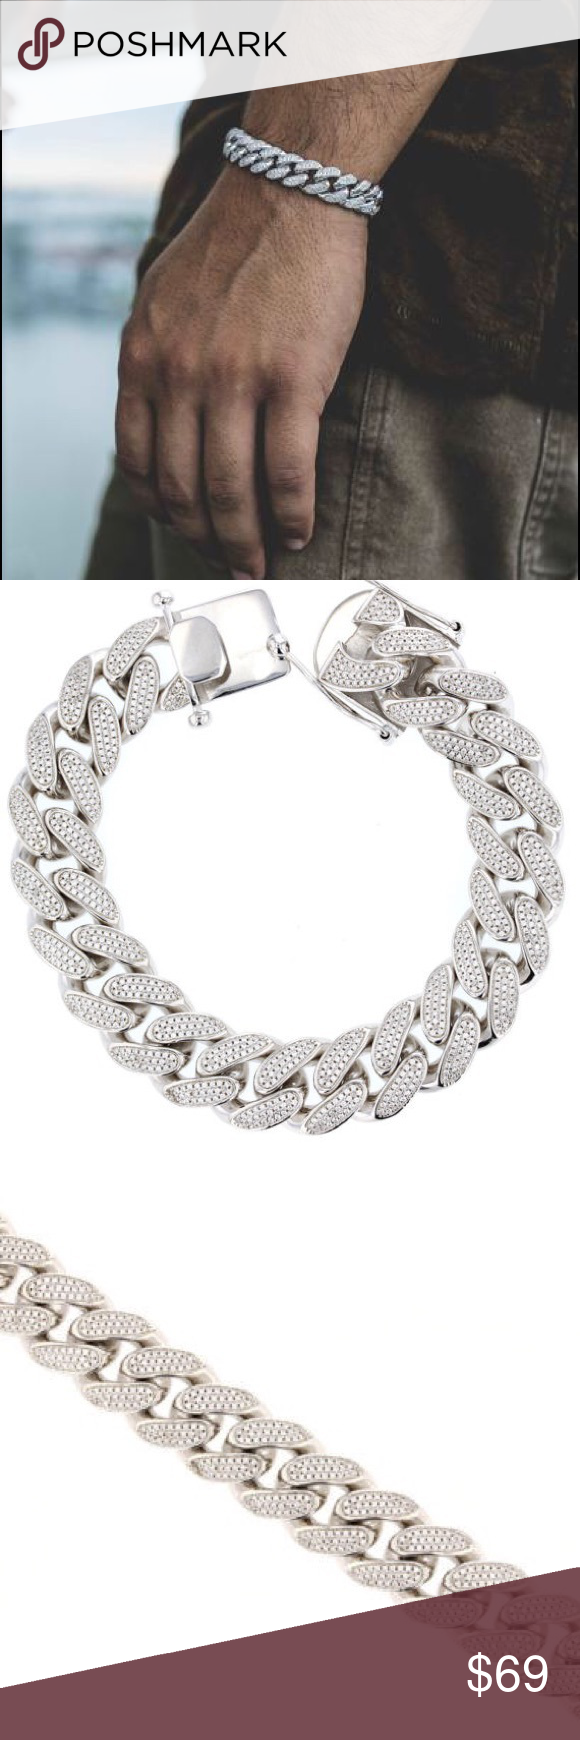 Iced Out White Gold Cuban Link Bracelet Iced Out Lab Diamond White Gold Cuban Link Bracelet Ful Mens Diamond Jewelry Mens Diamond Bracelet Gold Chains For Men